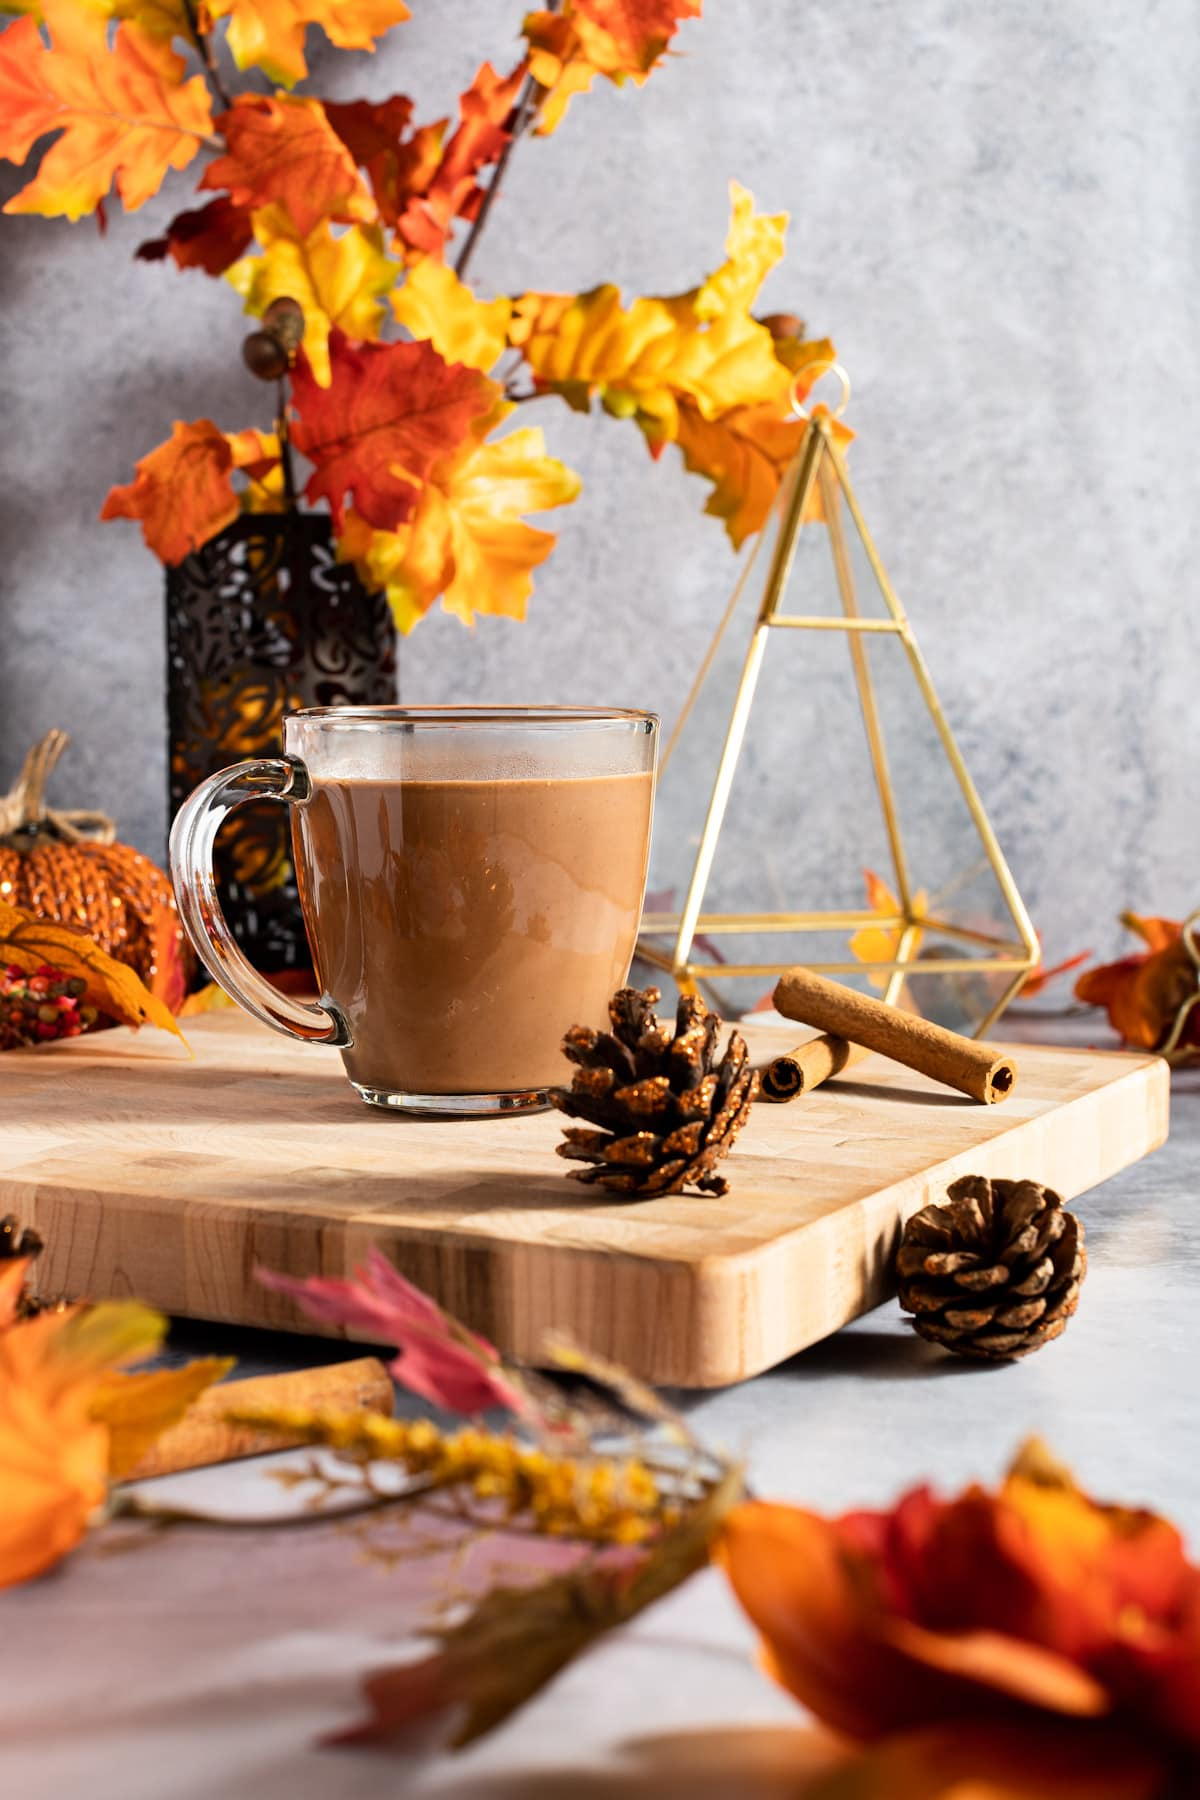 Oat milk hot chocolate on a wooden cutting board, next to pinecones and fall leaves.